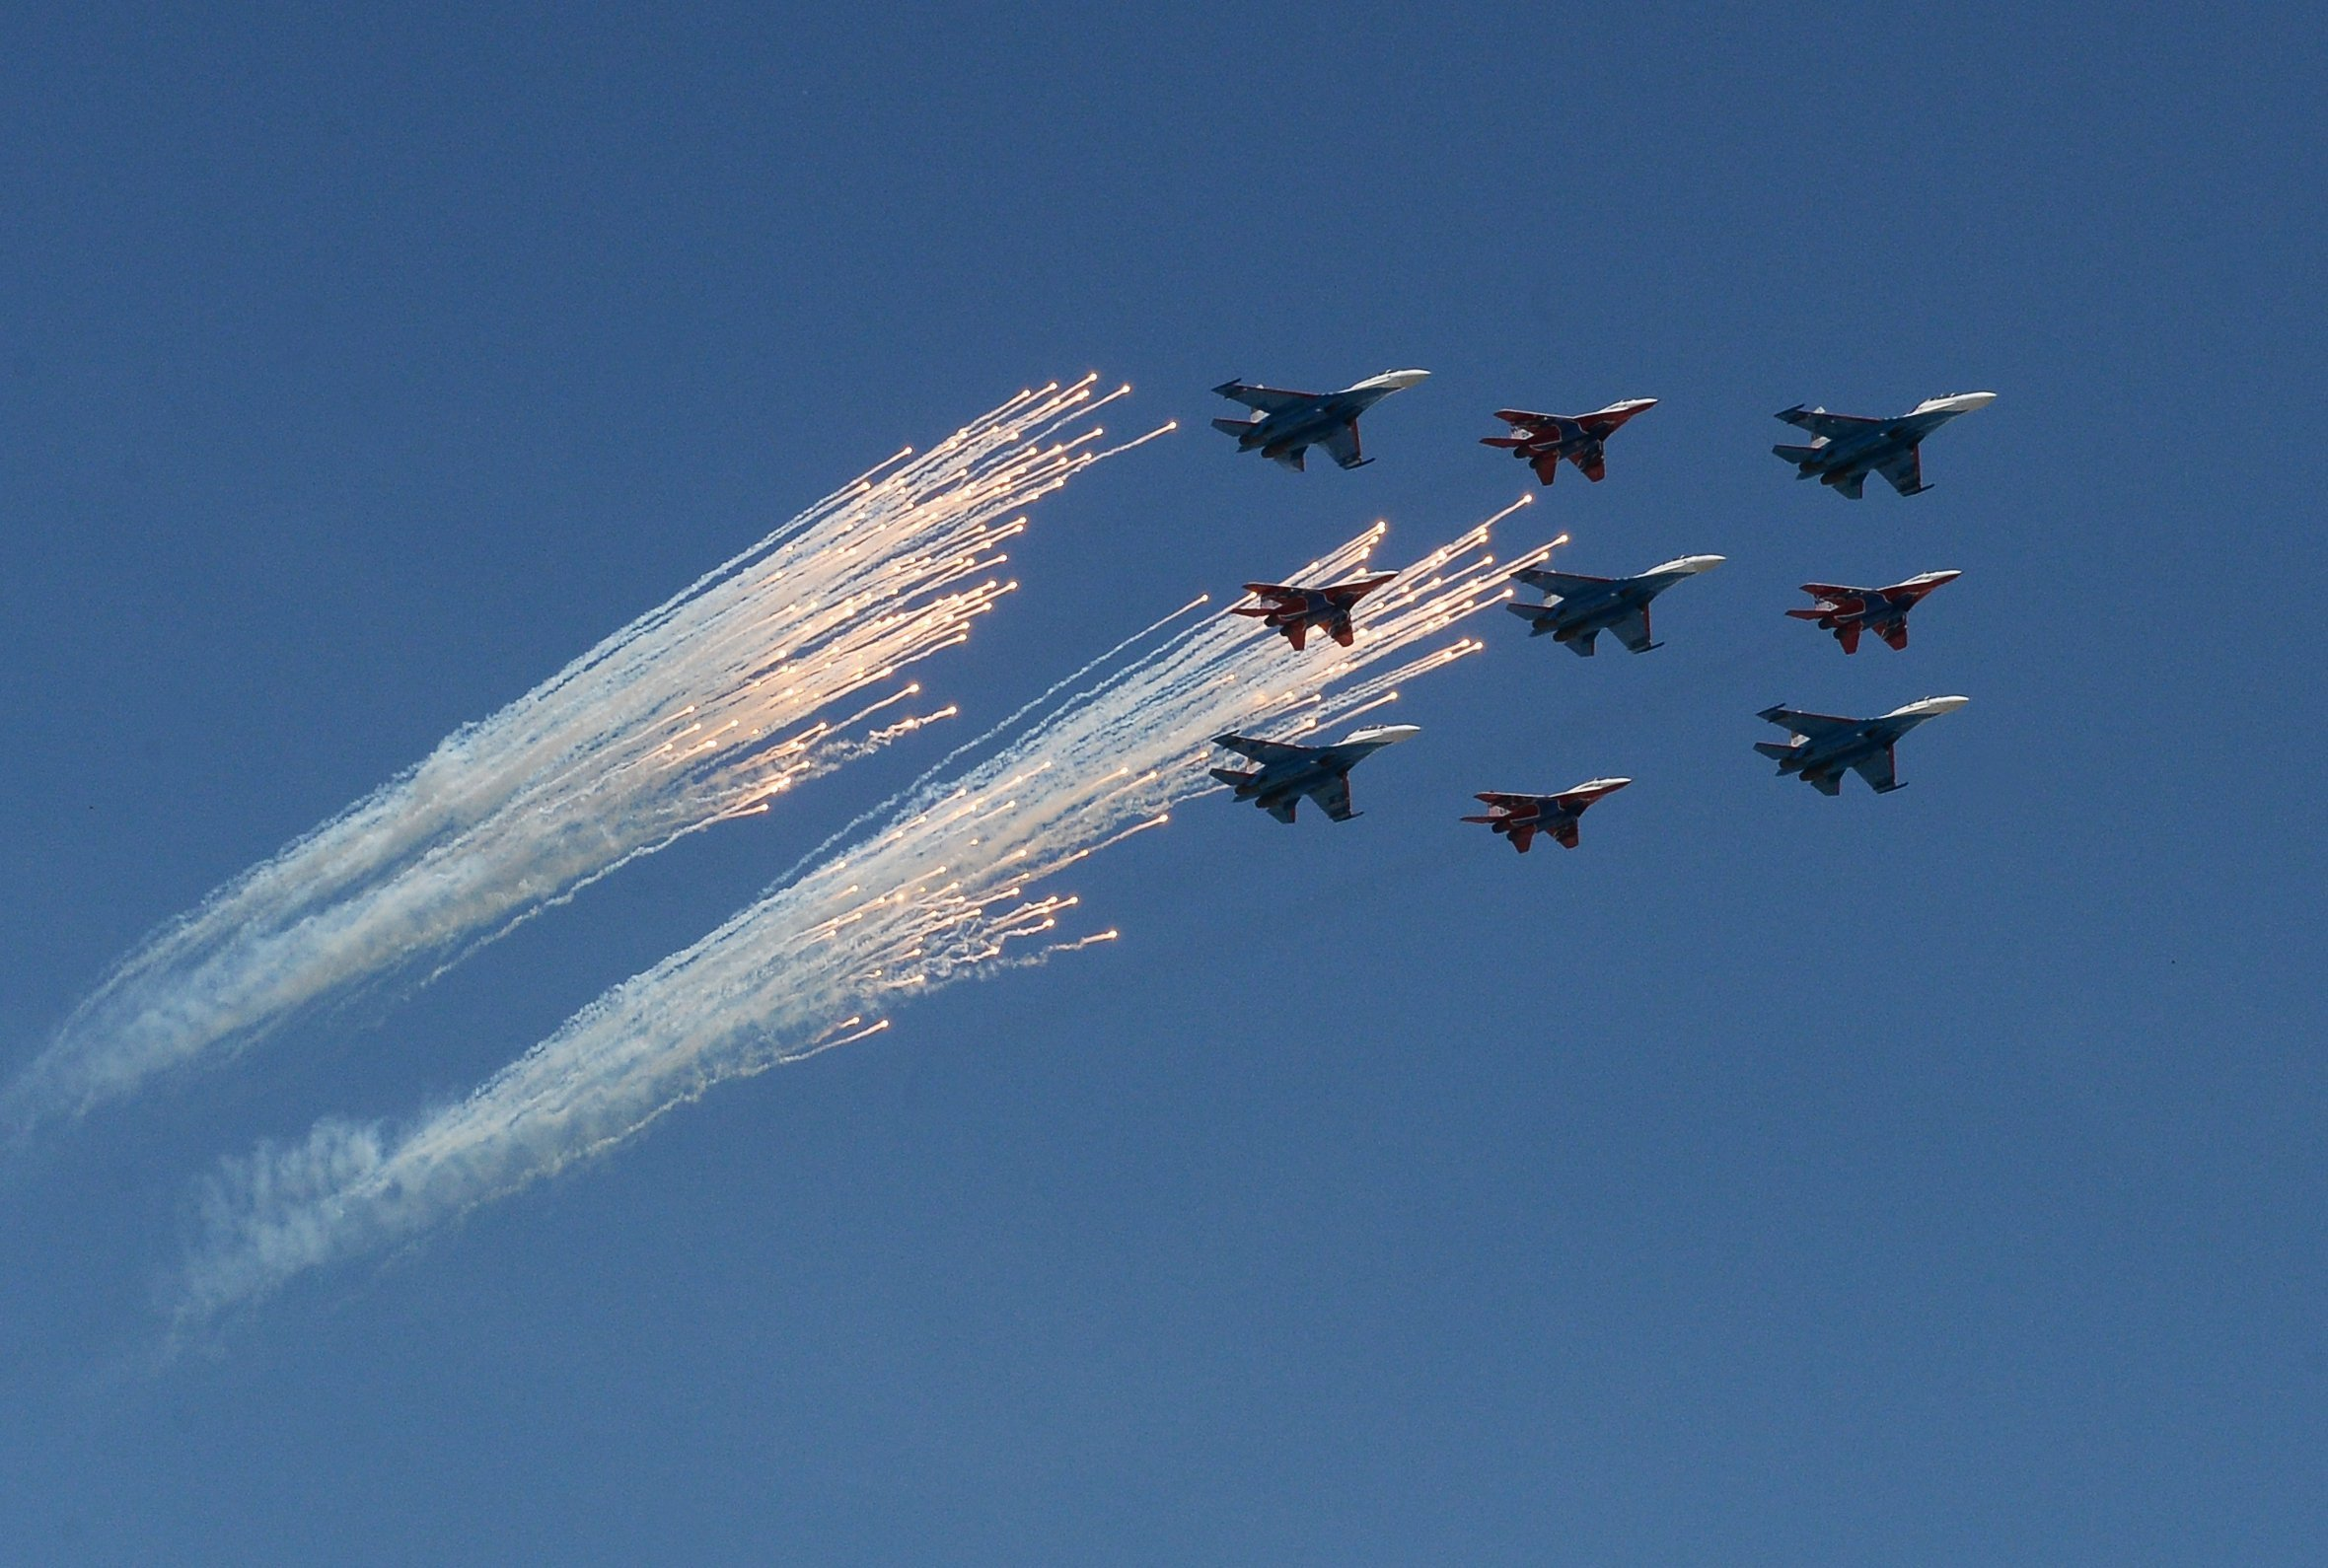 Sukhoi Su-27 Flanker fighters of the Russian Knights aerobatic team and Mikoyan-Gurevich MiG-29 Fulcrum fighters of the Swifts aerobatic team at the military parade to mark the 71st anniversary of Victory in the 1941-1945 Great Patriotic War